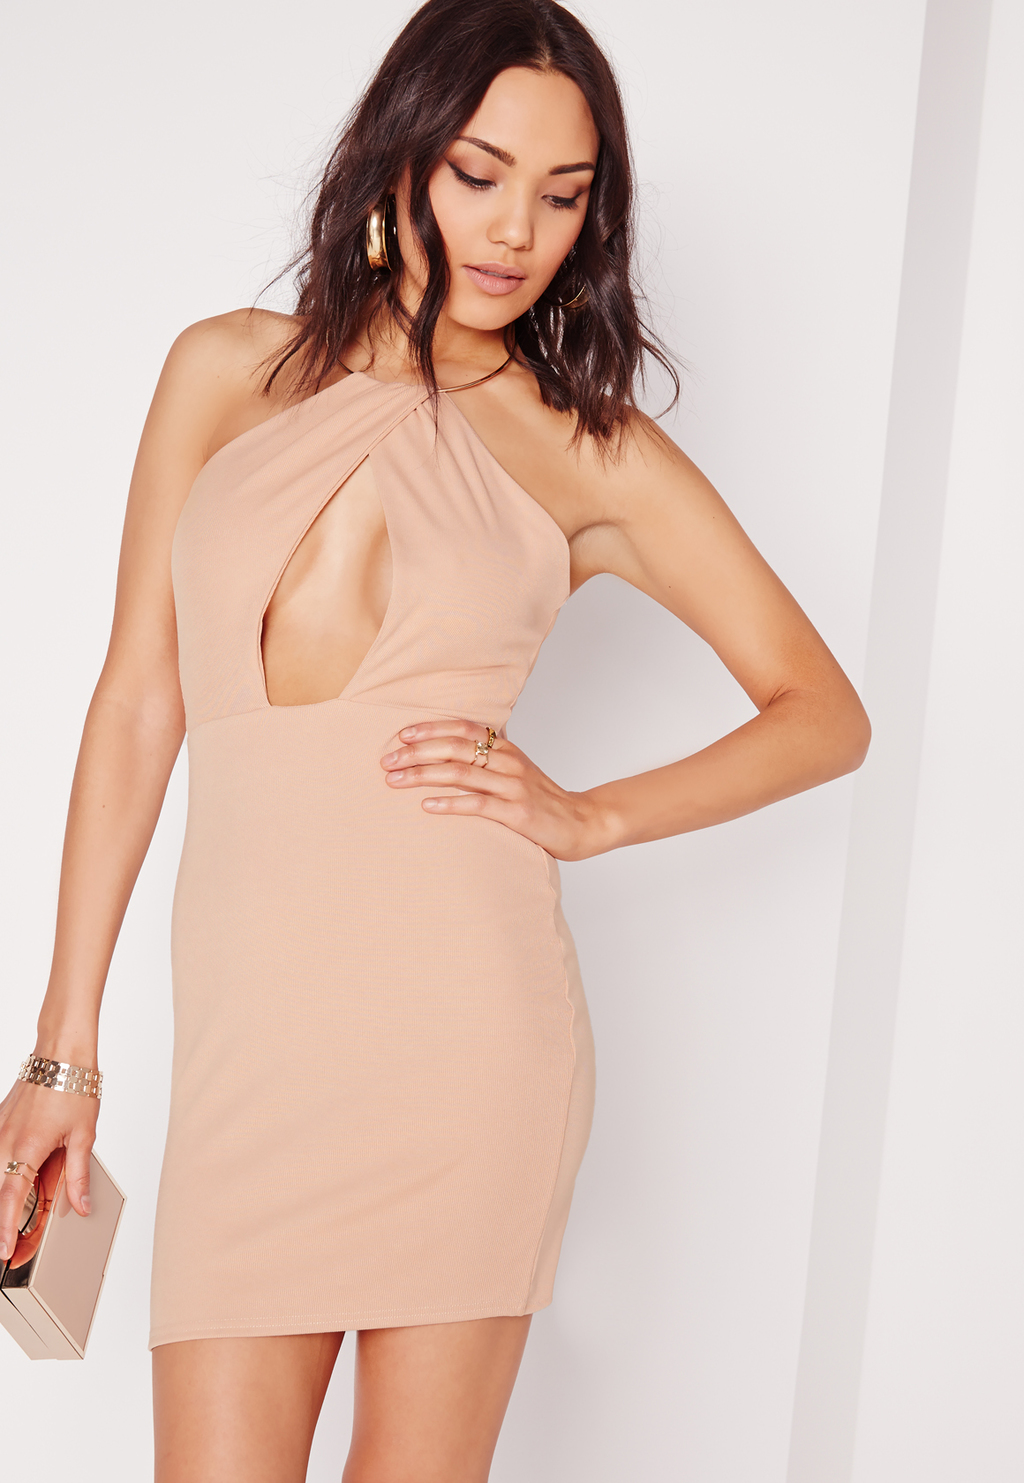 Gold Hoop Bodycon Dress Nude, Beige - length: mini; fit: tight; pattern: plain; sleeve style: sleeveless; style: bodycon; predominant colour: nude; occasions: evening; fibres: polyester/polyamide - 100%; sleeve length: sleeveless; texture group: jersey - clingy; pattern type: fabric; season: s/s 2016; neckline: high halter neck